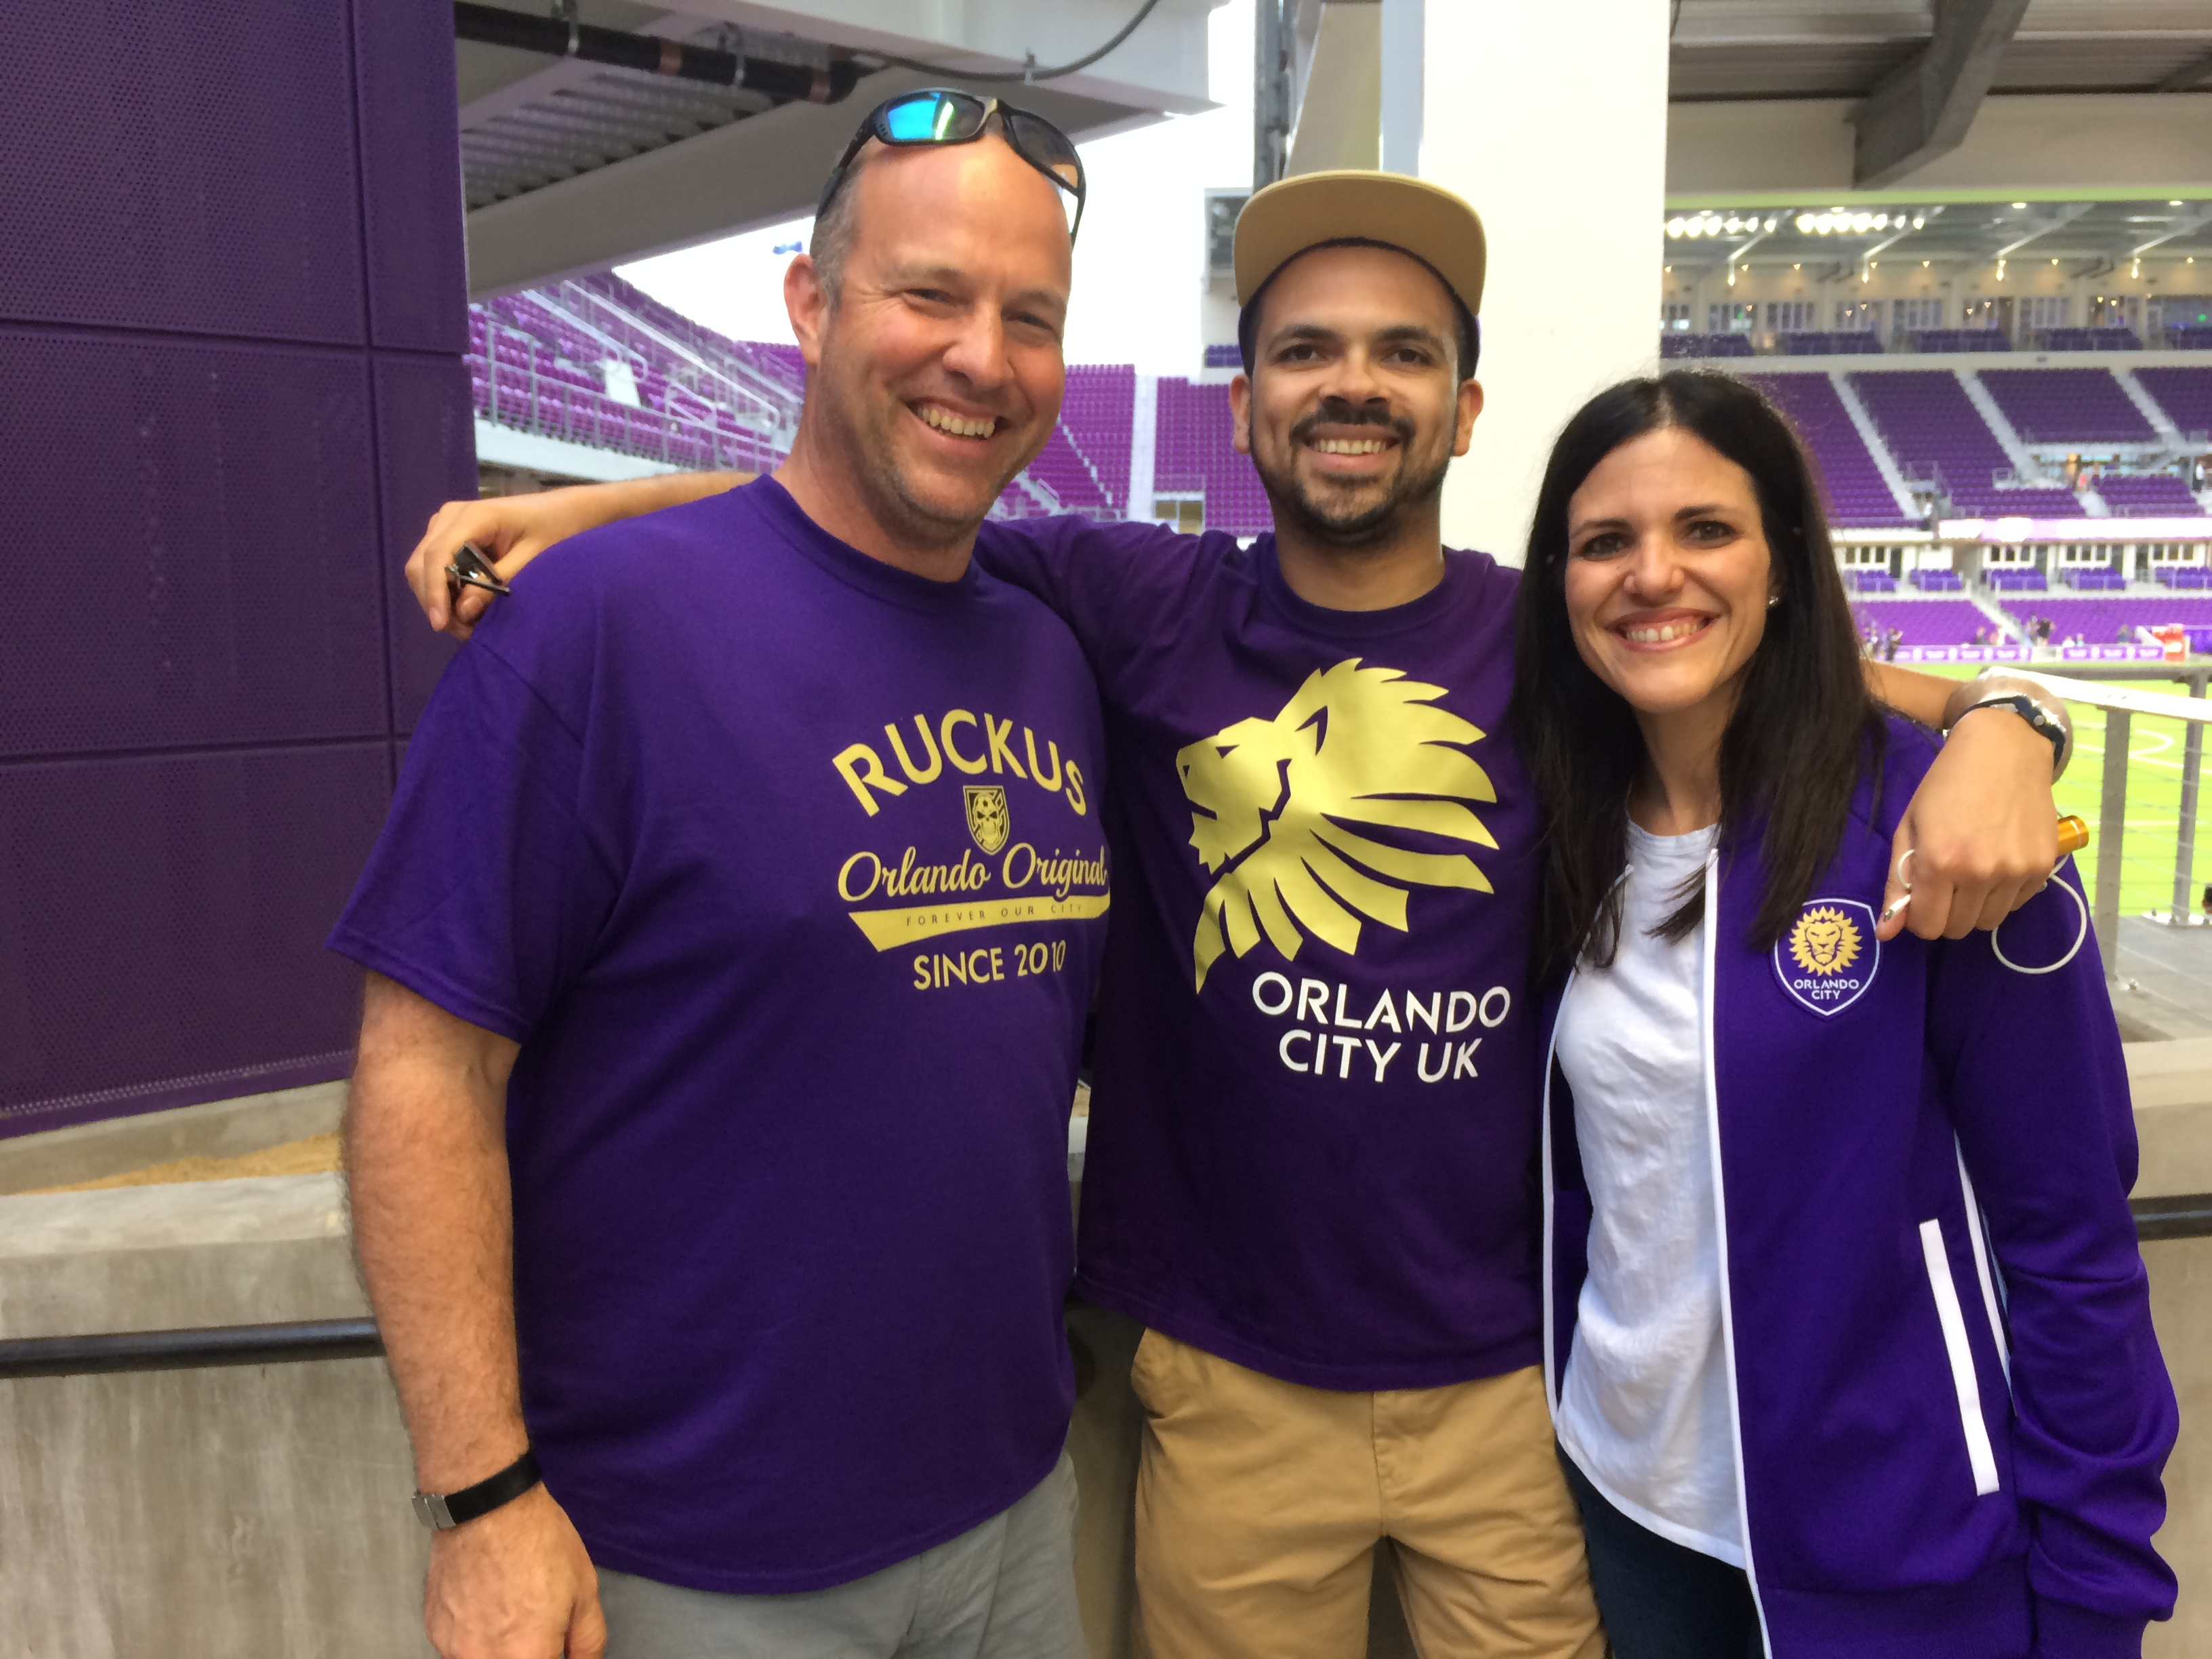 Orlando City UK Gallery 4